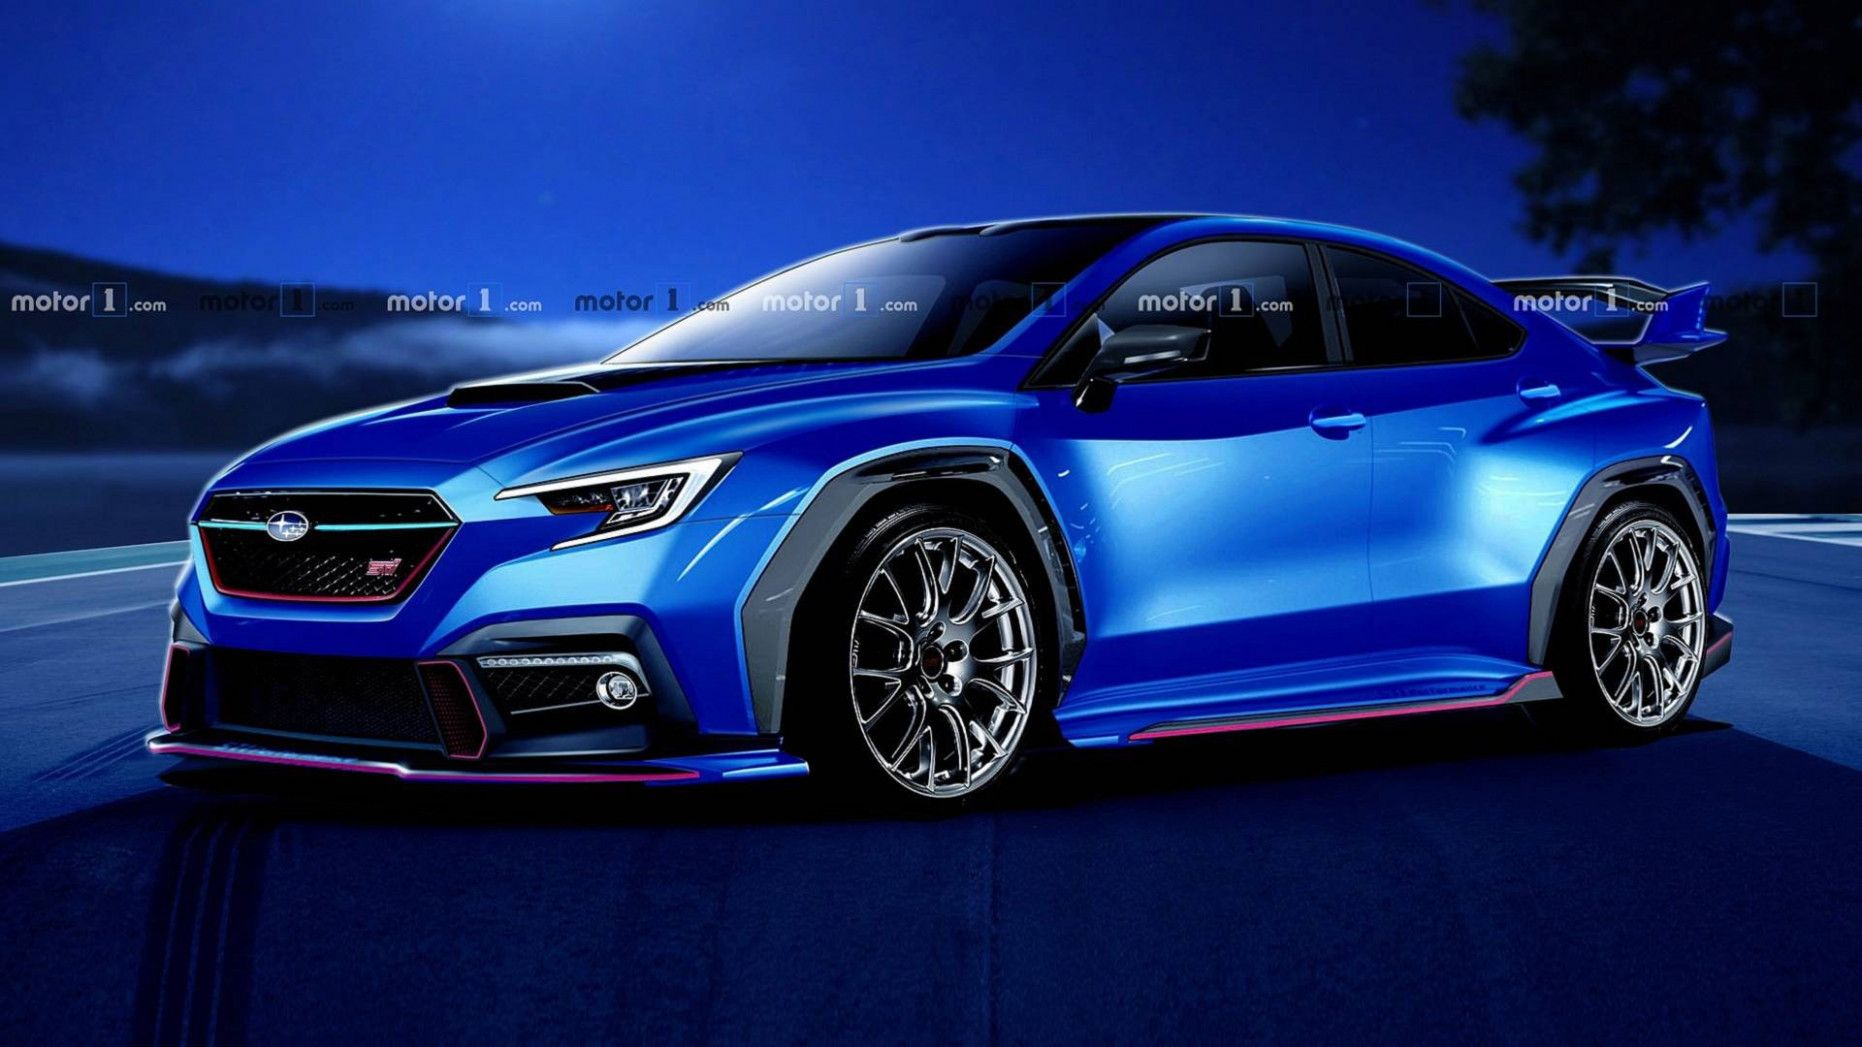 Subaru Hatchback Wrx 2020 Release 2020 Car Reviews Subaru Wrx Subaru Hatchback Wrx Sti